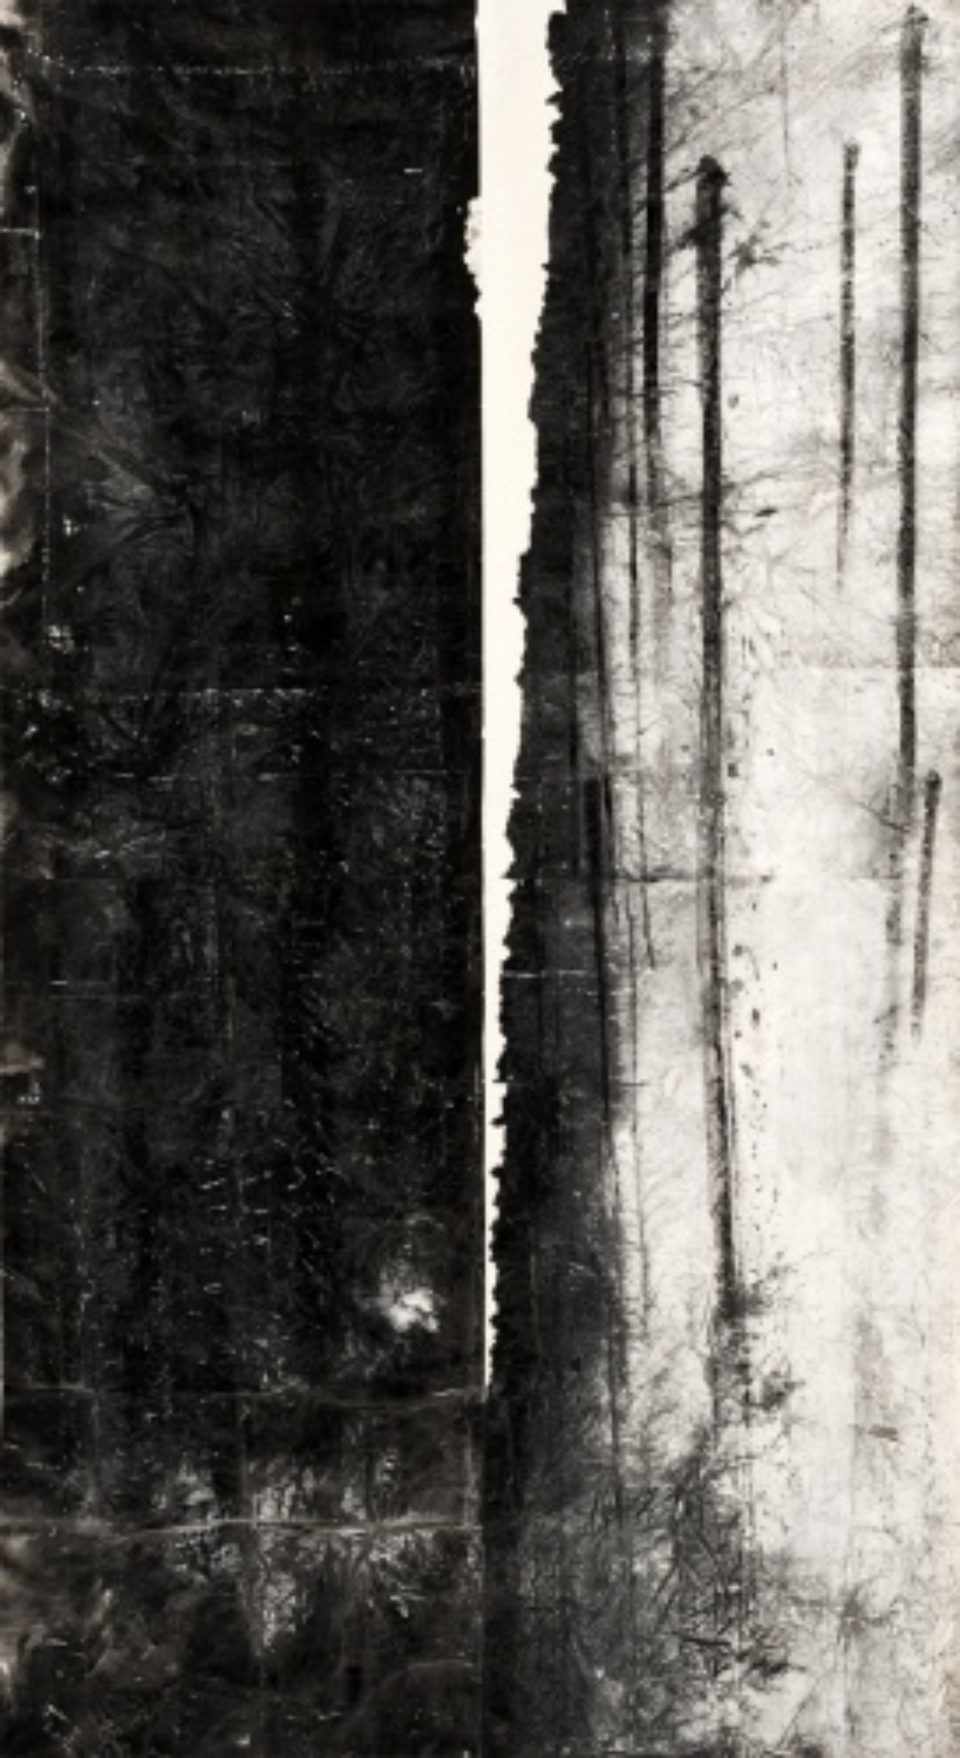 Zheng Chongbin: Slanted light 2011 Ink, acrylics and wash on xuan paper L 190 cm x H 390 cm